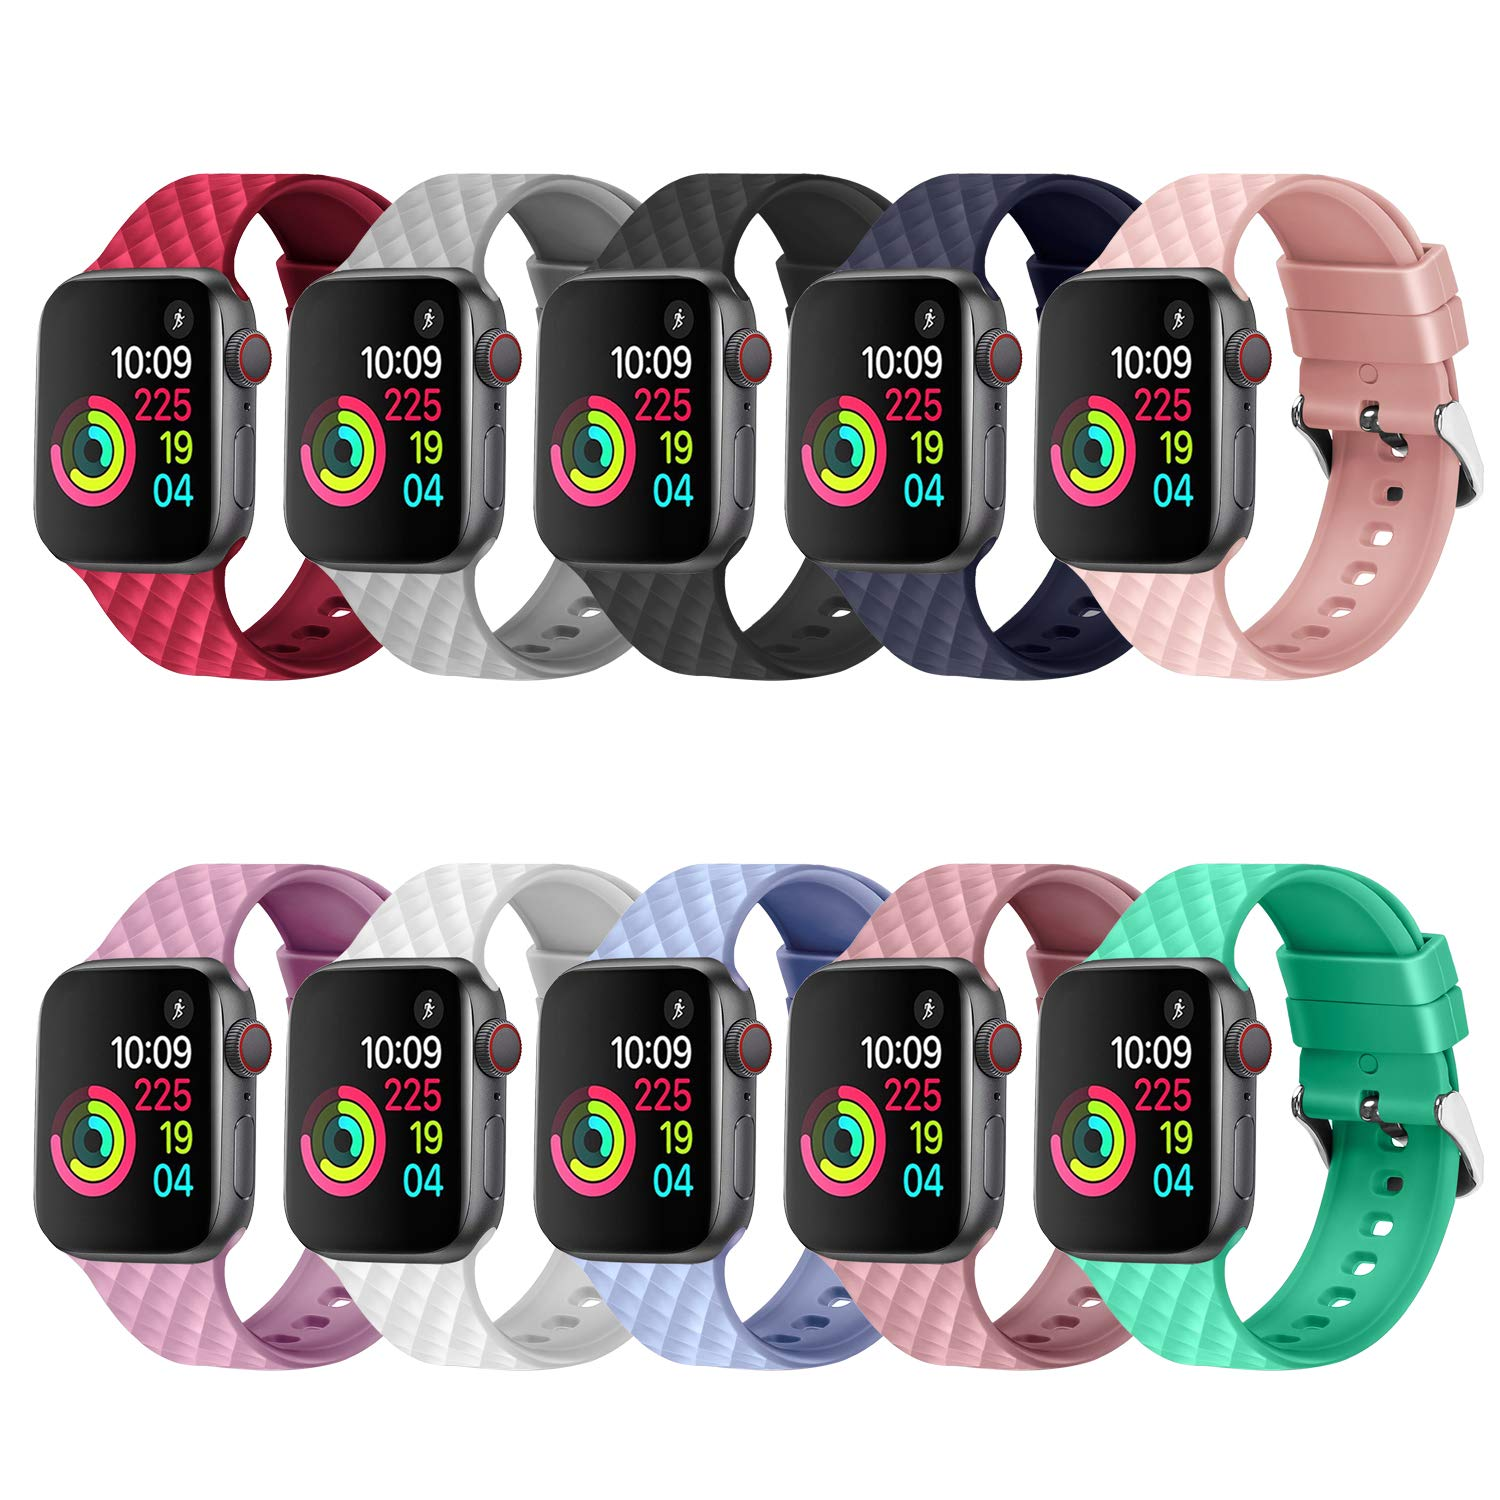 JIELIELE Compatible with 38mm 42mm Apple Watch Band Sport Silicone Replacement Wristband Women Man Strap for iWatch Series 4/3/2/1 (10PCS, 38mm) by JIELIELE